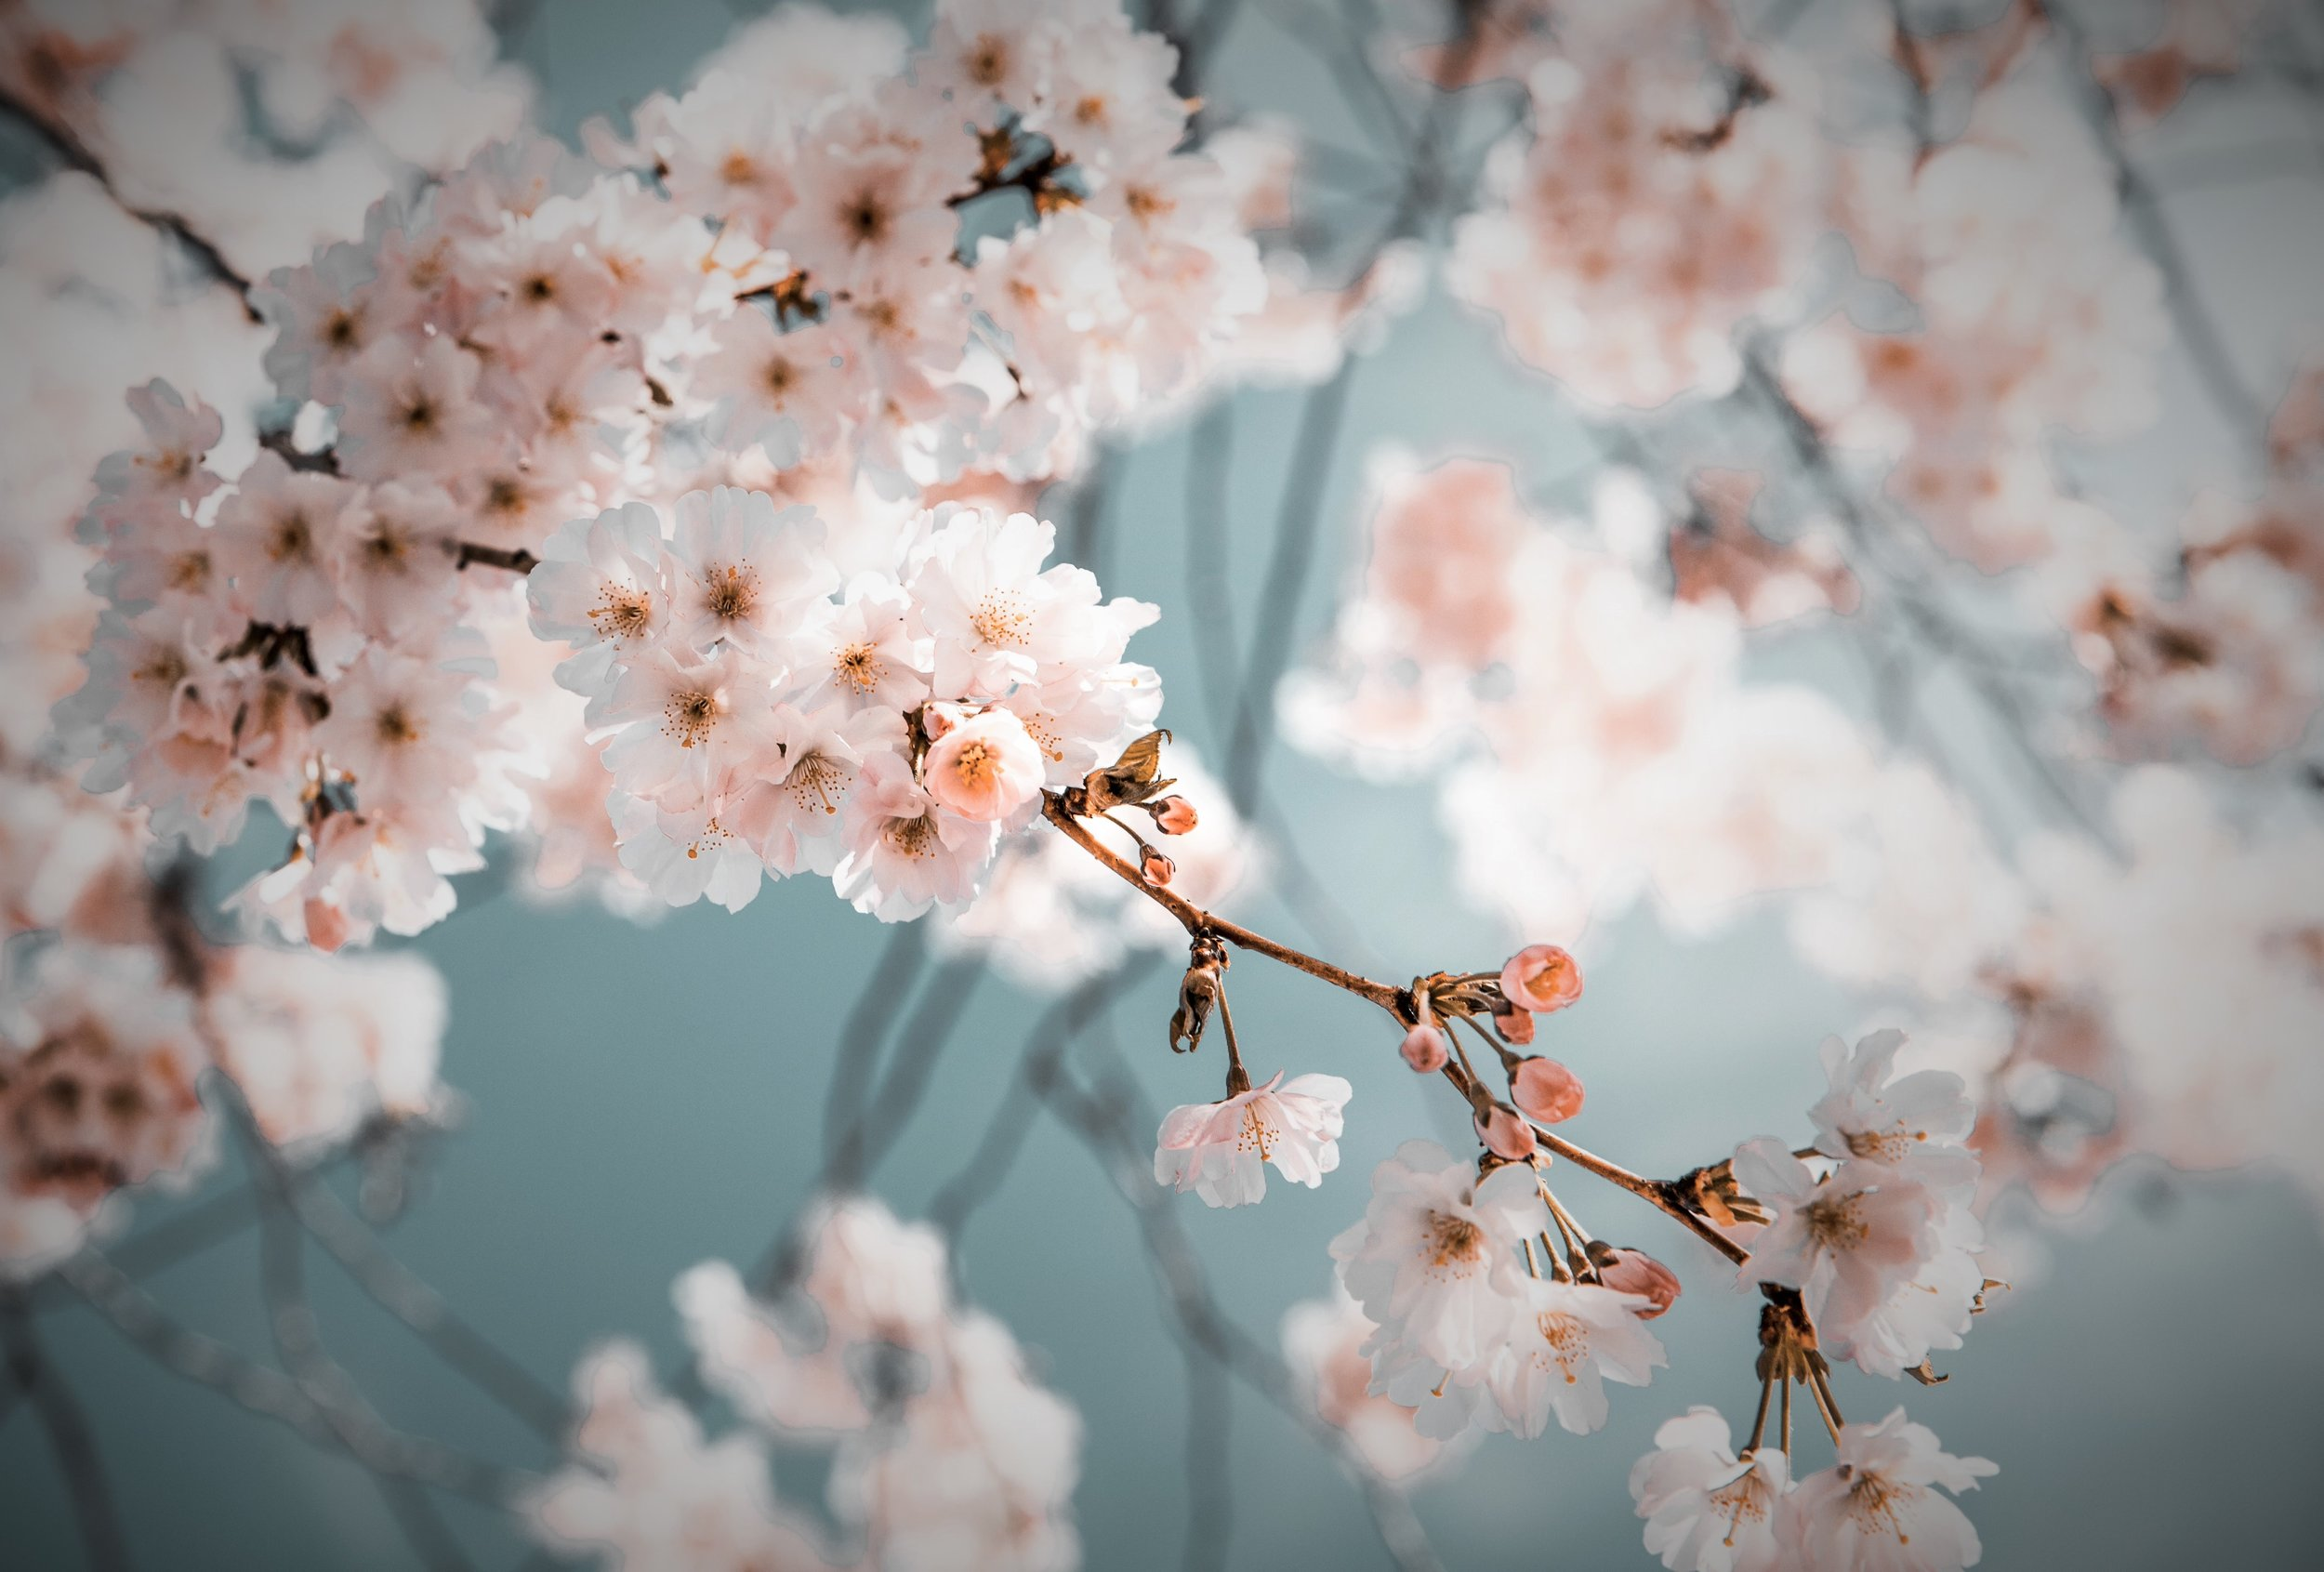 blossom-branch-desktop-backgrounds-2101187.jpg